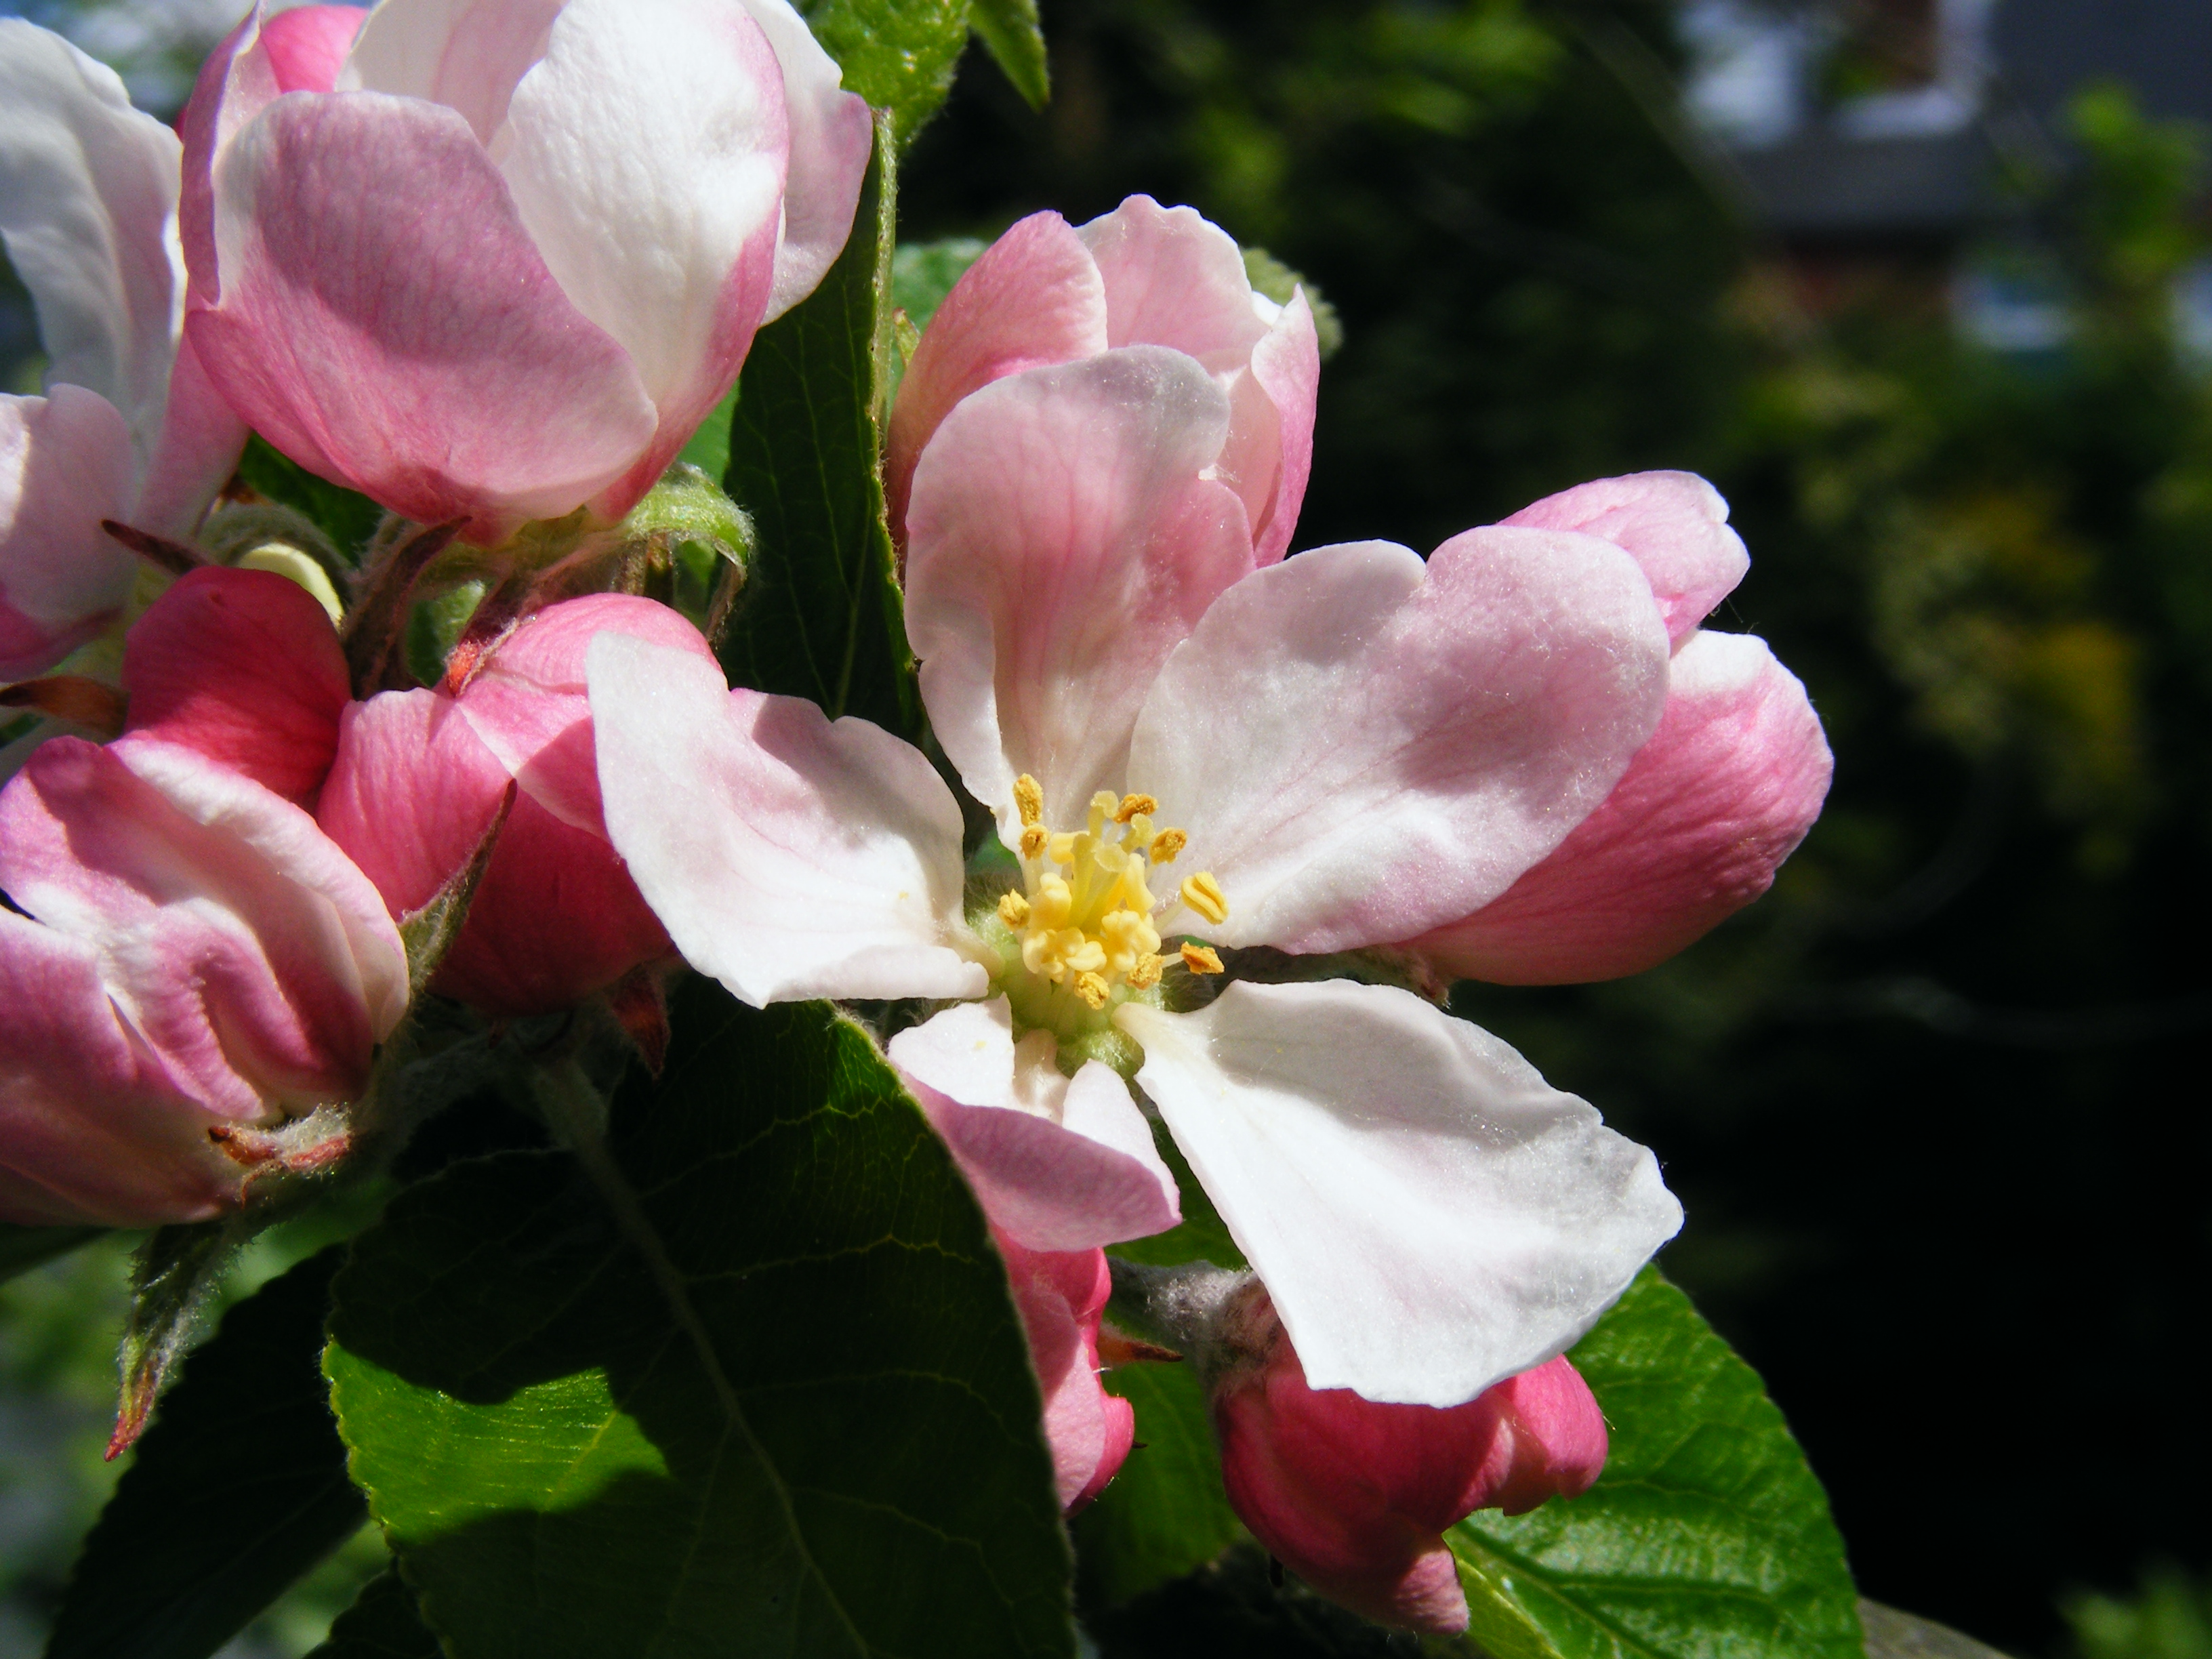 The Dos and Don'ts for Apple Blossom 2015